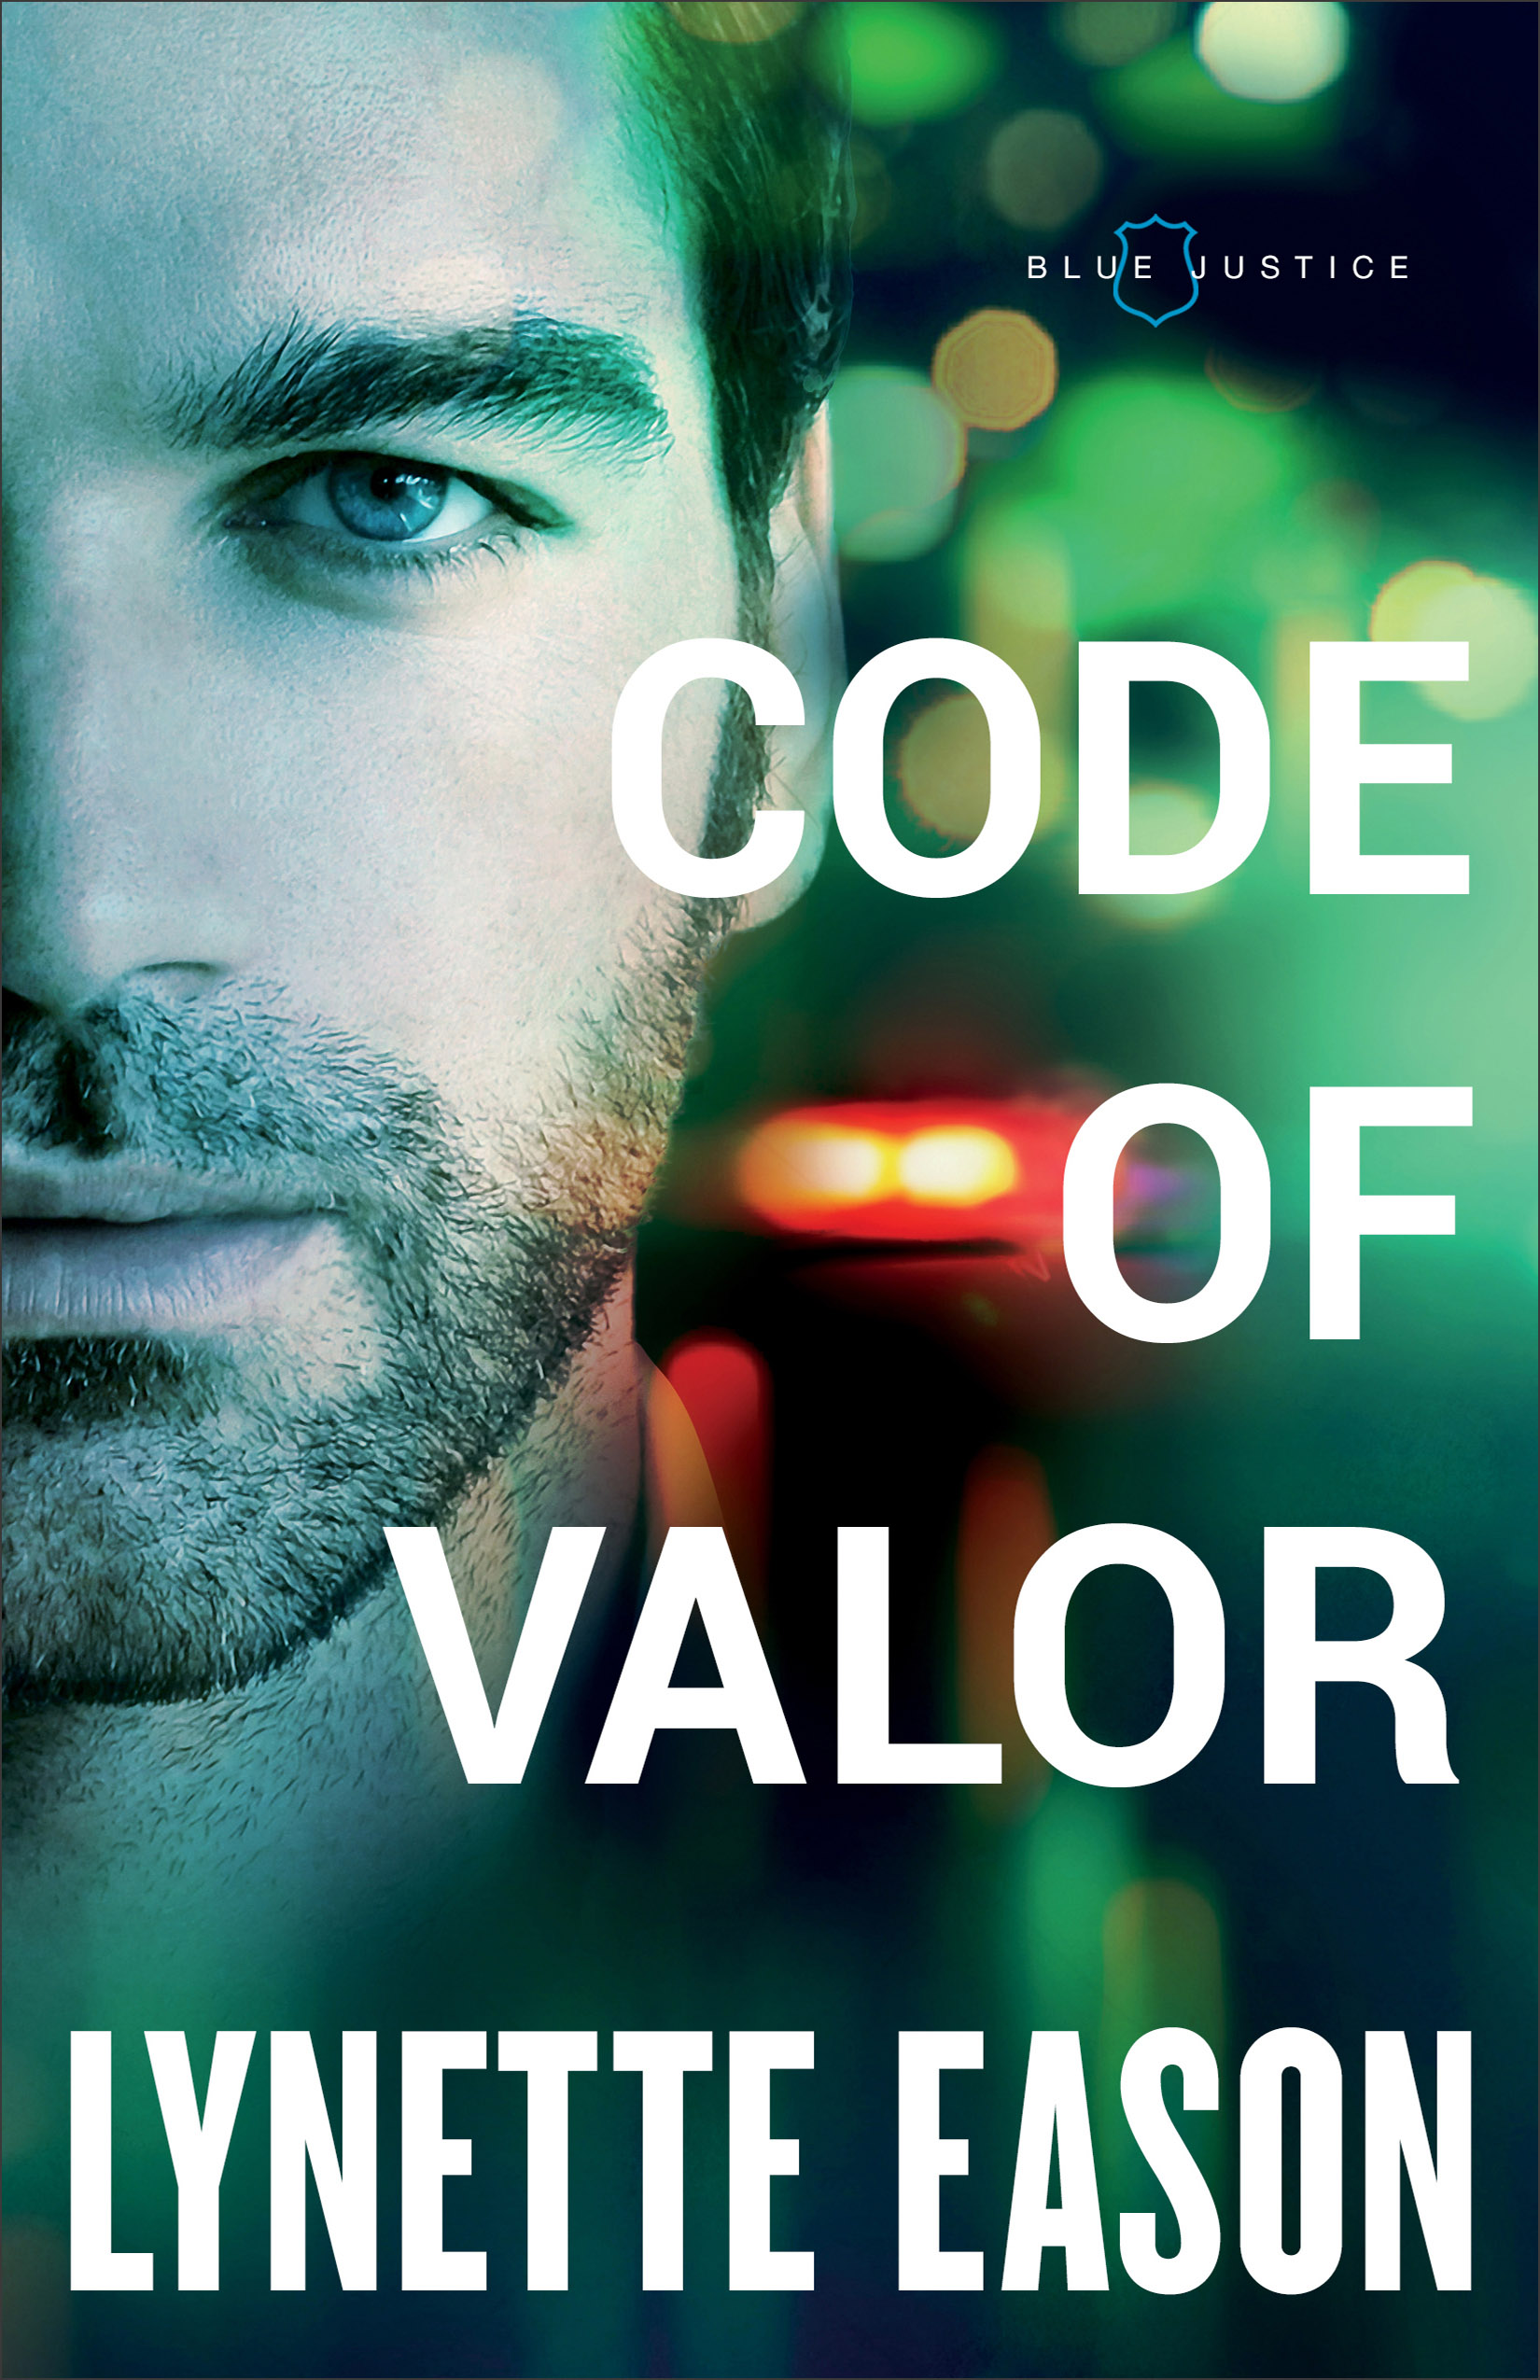 Book review of Code of Valor by Lynette Eason (Revell) by papertapepins